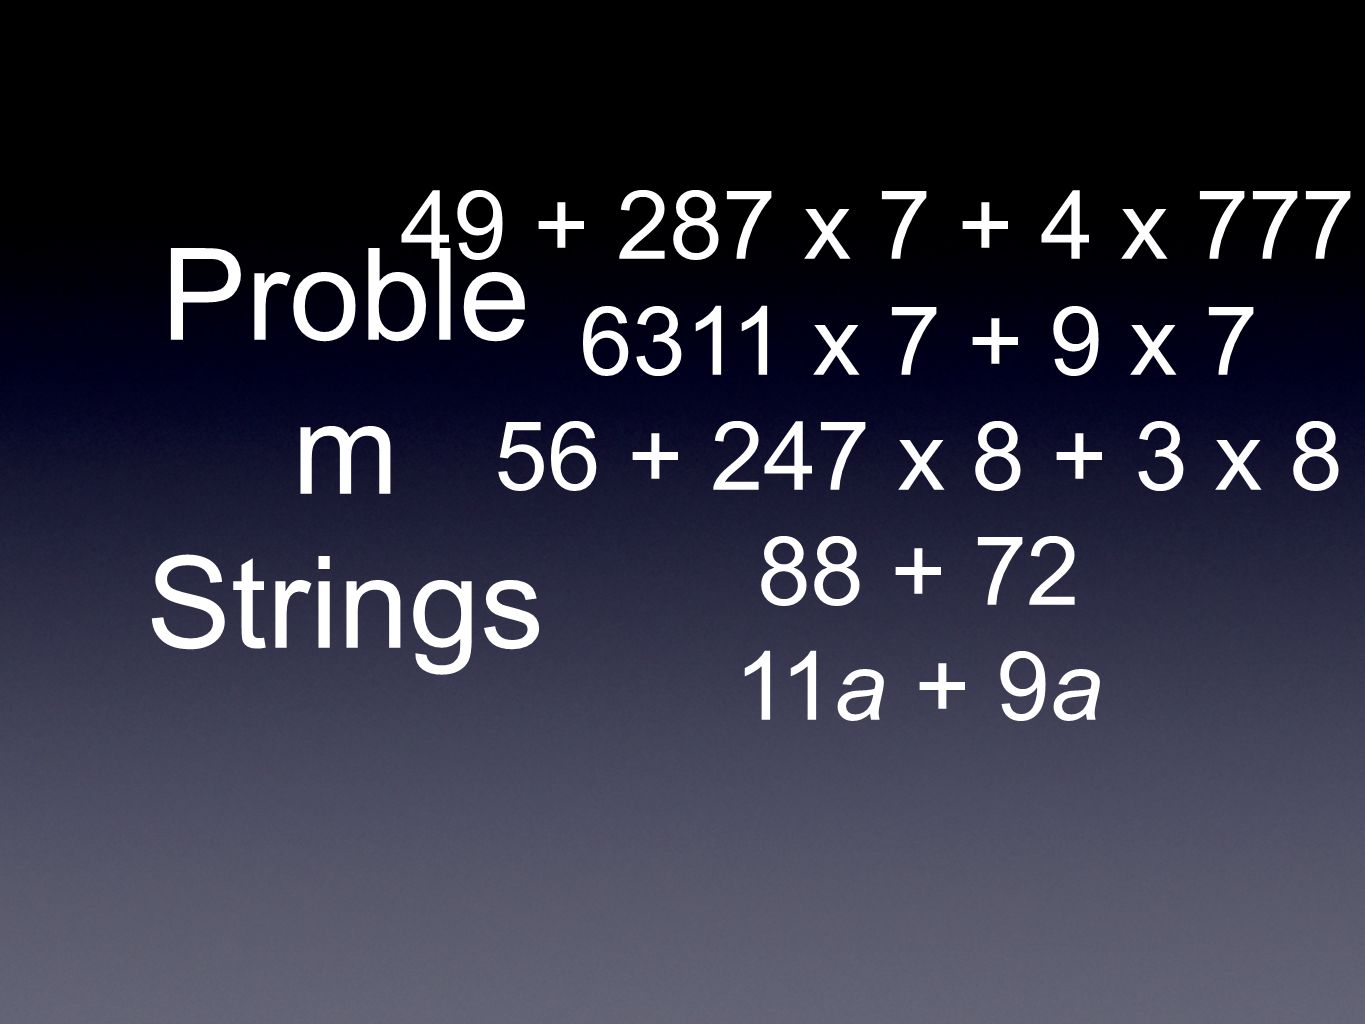 Proble m Strings 49 + 287 x 7 + 4 x 777 + 6311 x 7 + 9 x 7 56 + 247 x 8 + 3 x 8 88 + 72 11a + 9a